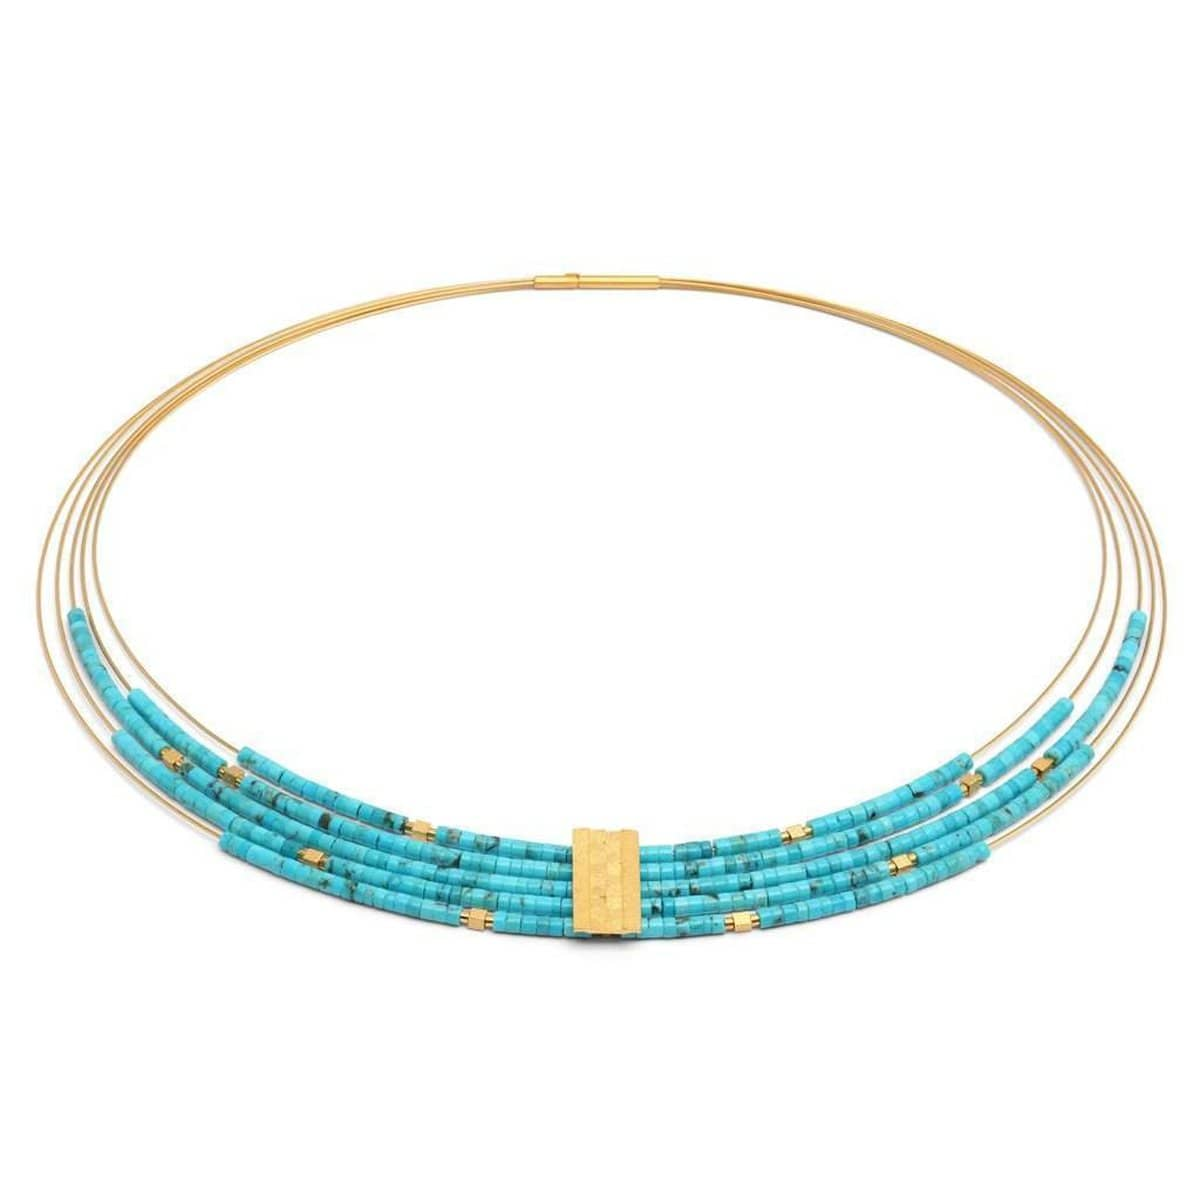 Orfea Turquoise Necklace - 85085256-Bernd Wolf-Renee Taylor Gallery